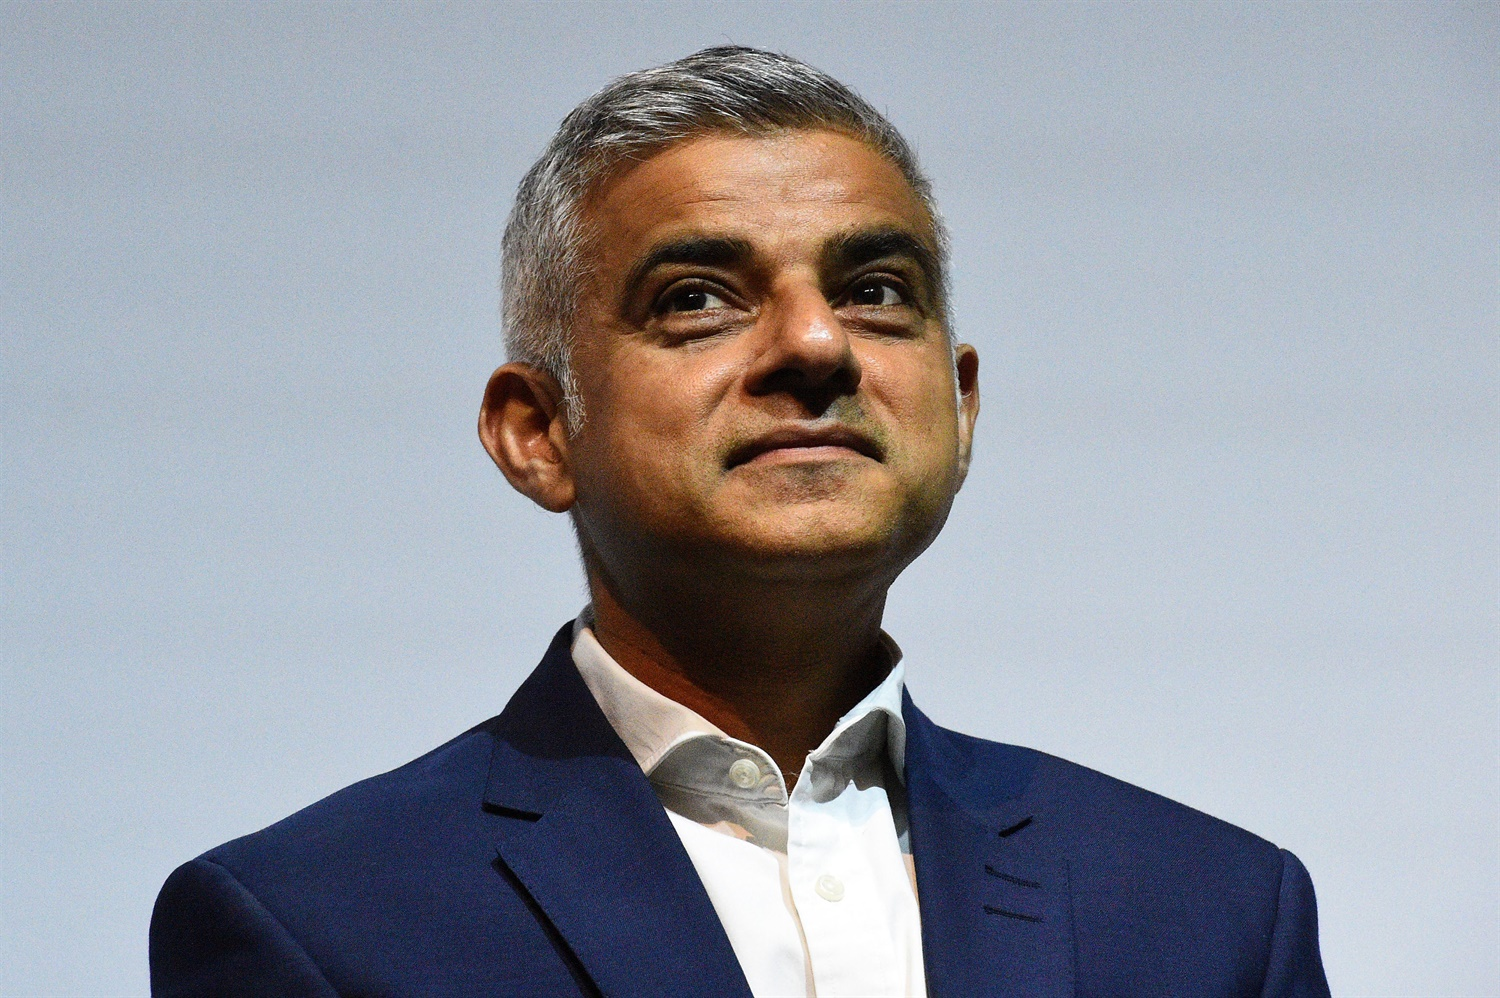 Crossrail: Khan commissions report into governance, says he 'cannot be sure' of completion date